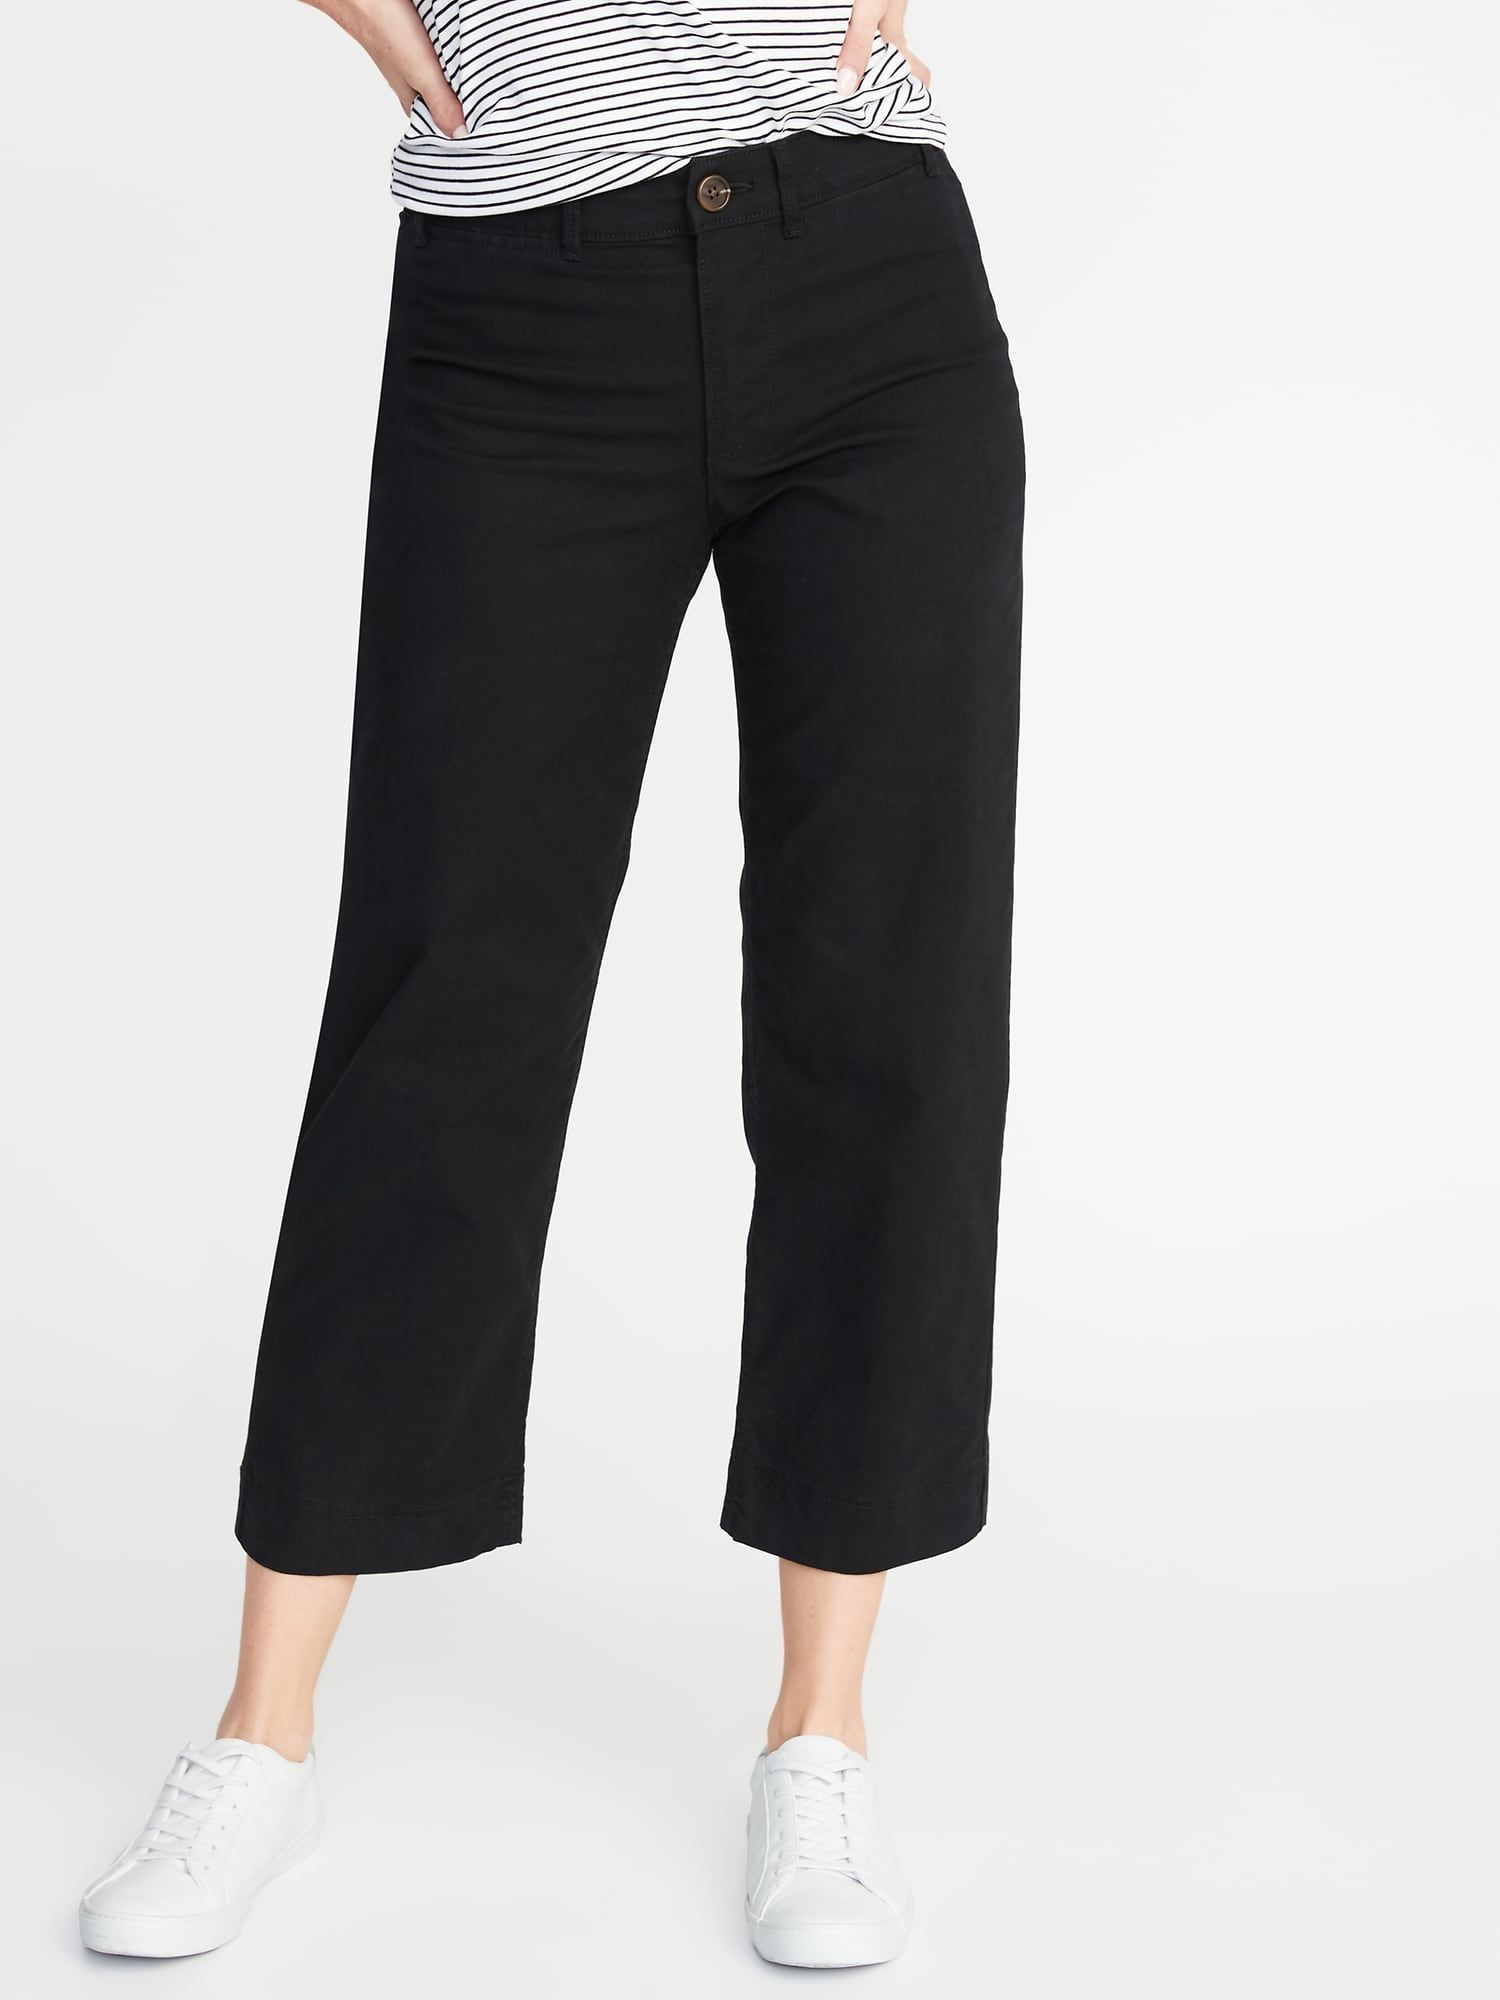 e33b9f7096 Mid-Rise Slim Wide-Leg Chinos for Women in 2019 | style + ease ...